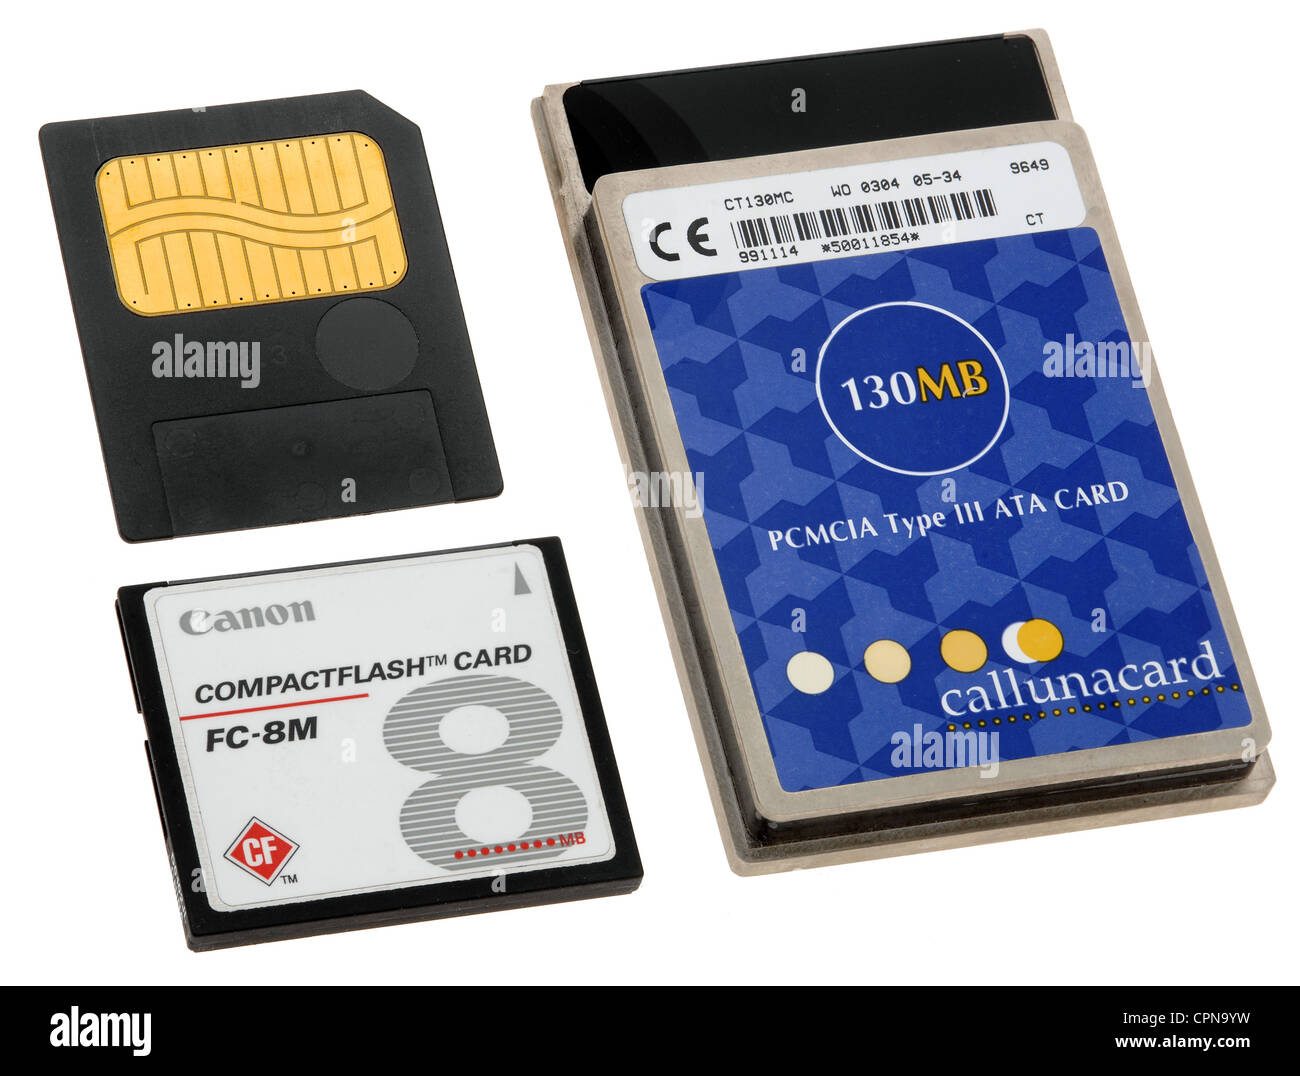 computing / electronics, memory card, the first memory cards for digital camera, Compactflash, made by Canon, PCMCIA - Stock Image